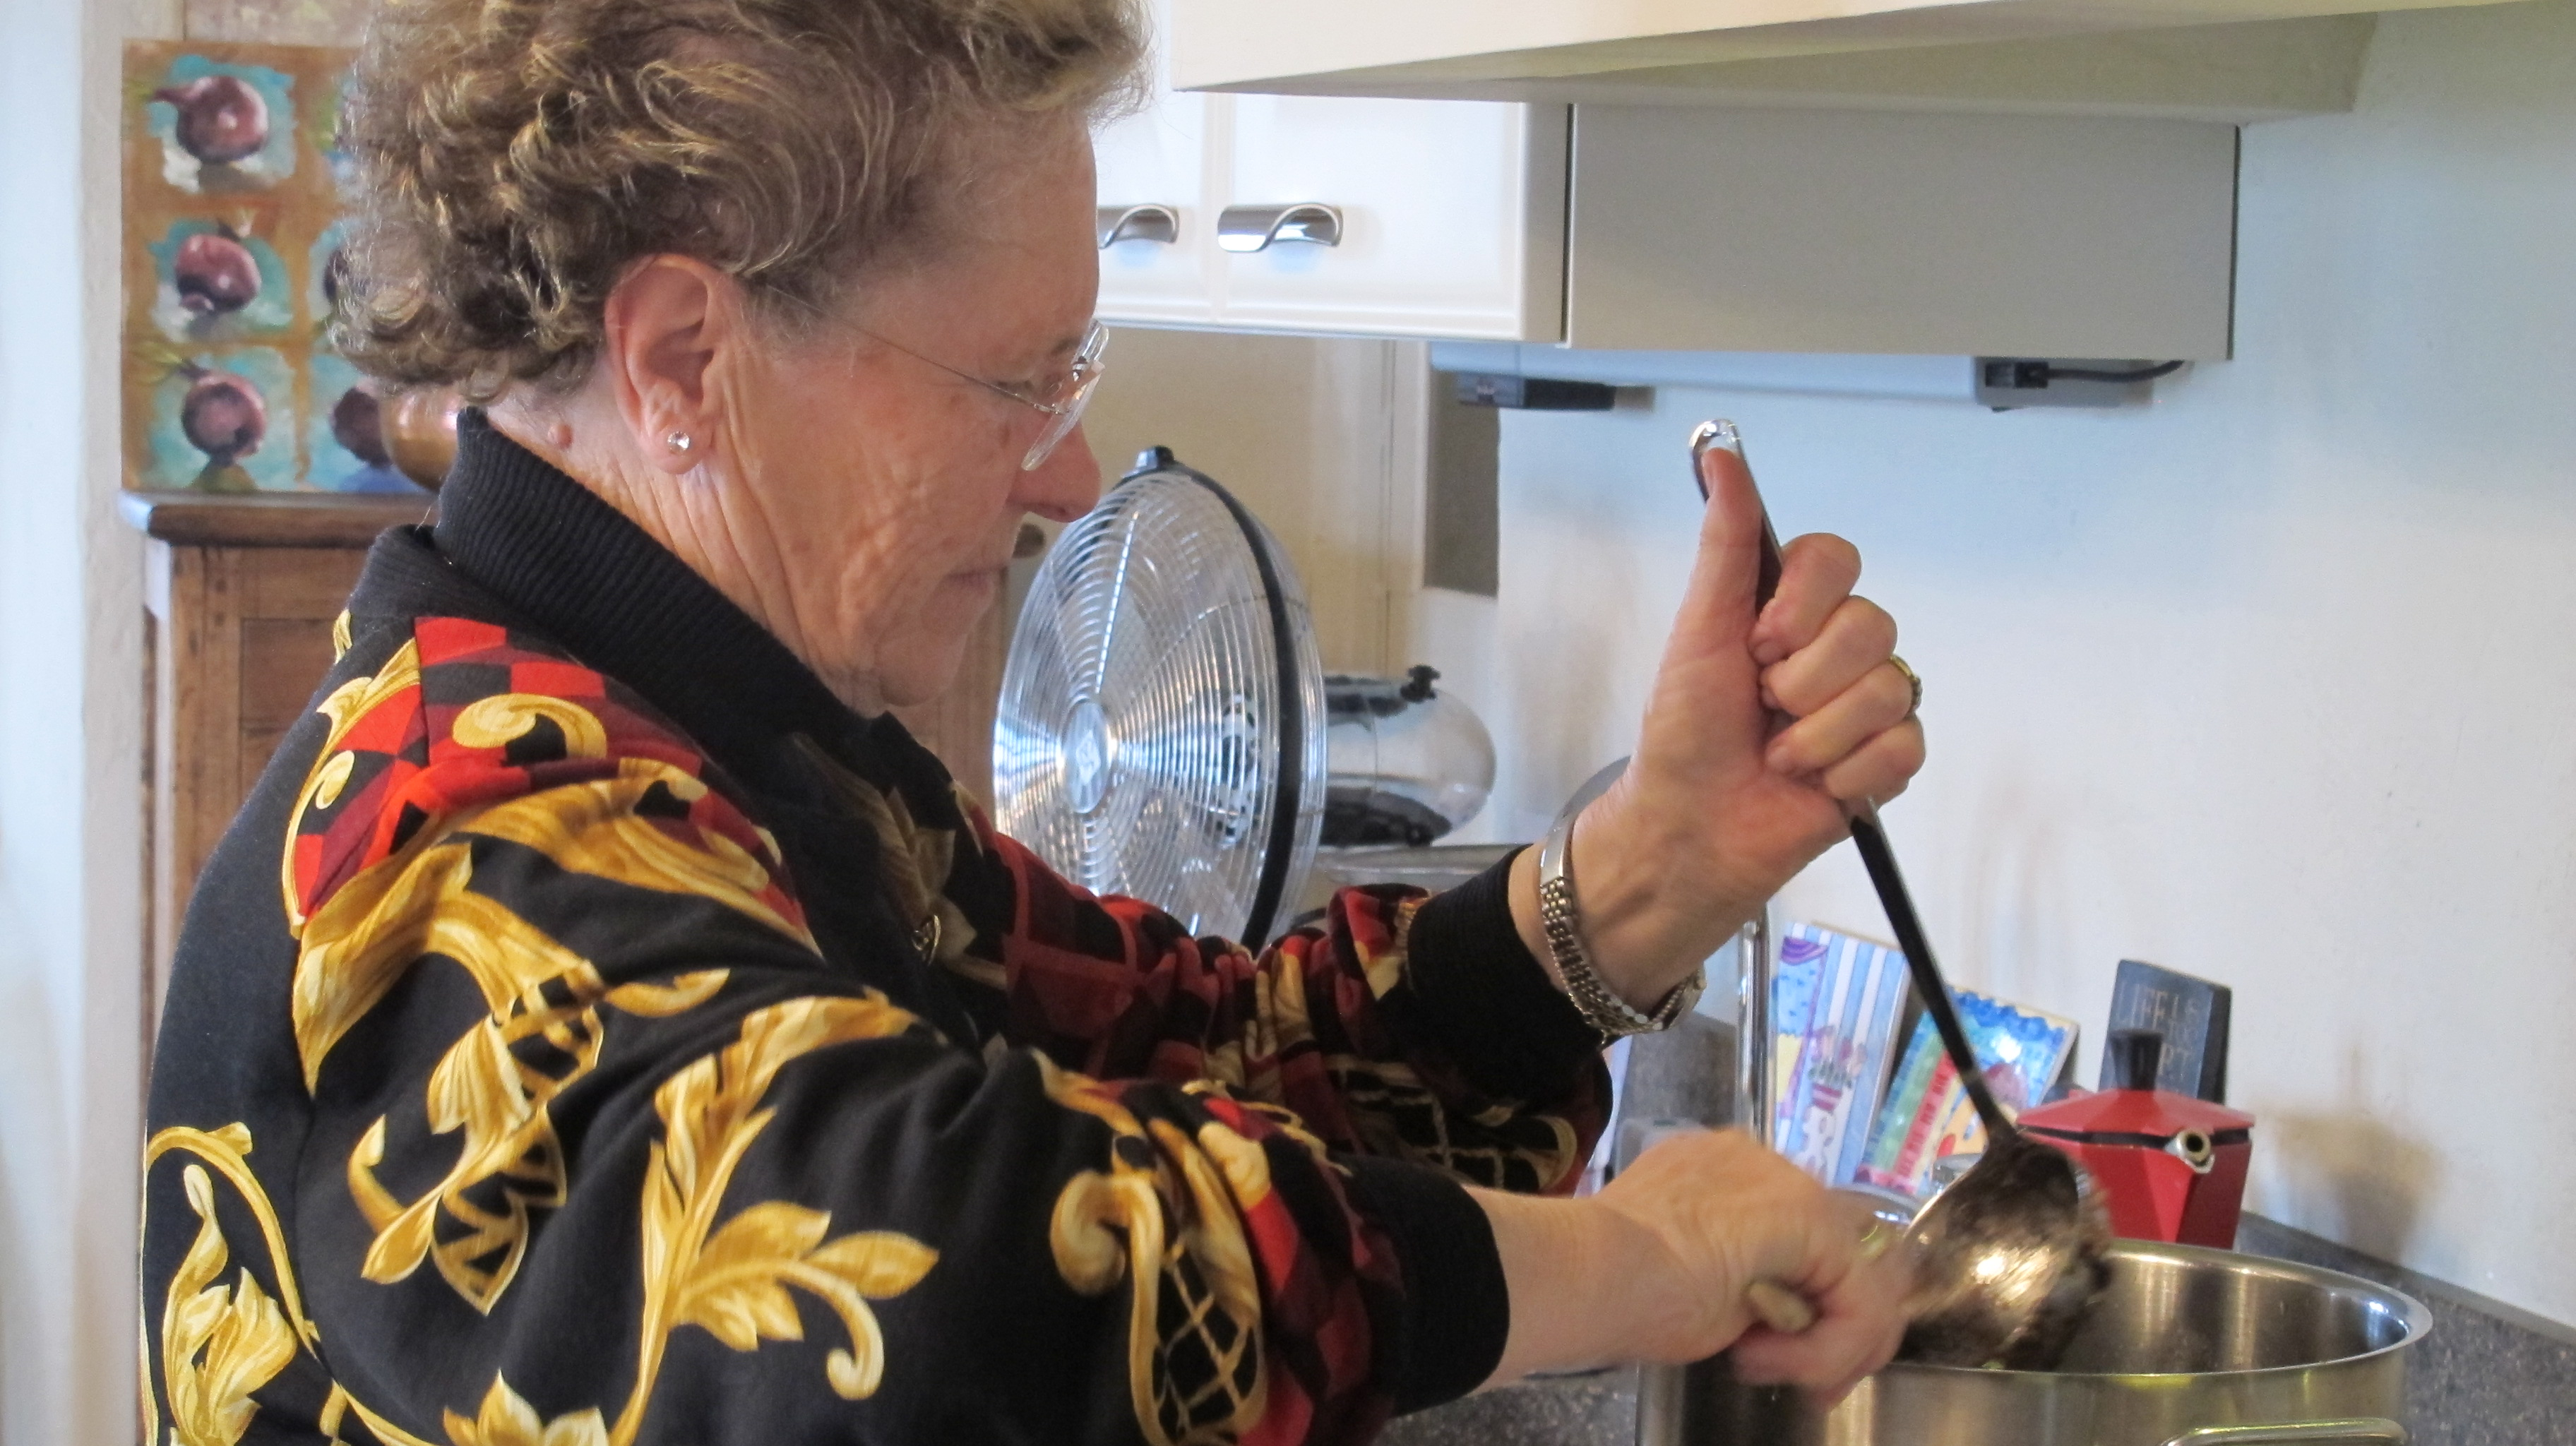 Nonna Italia cooks the radicchio with true Italian grandmotherly passion.